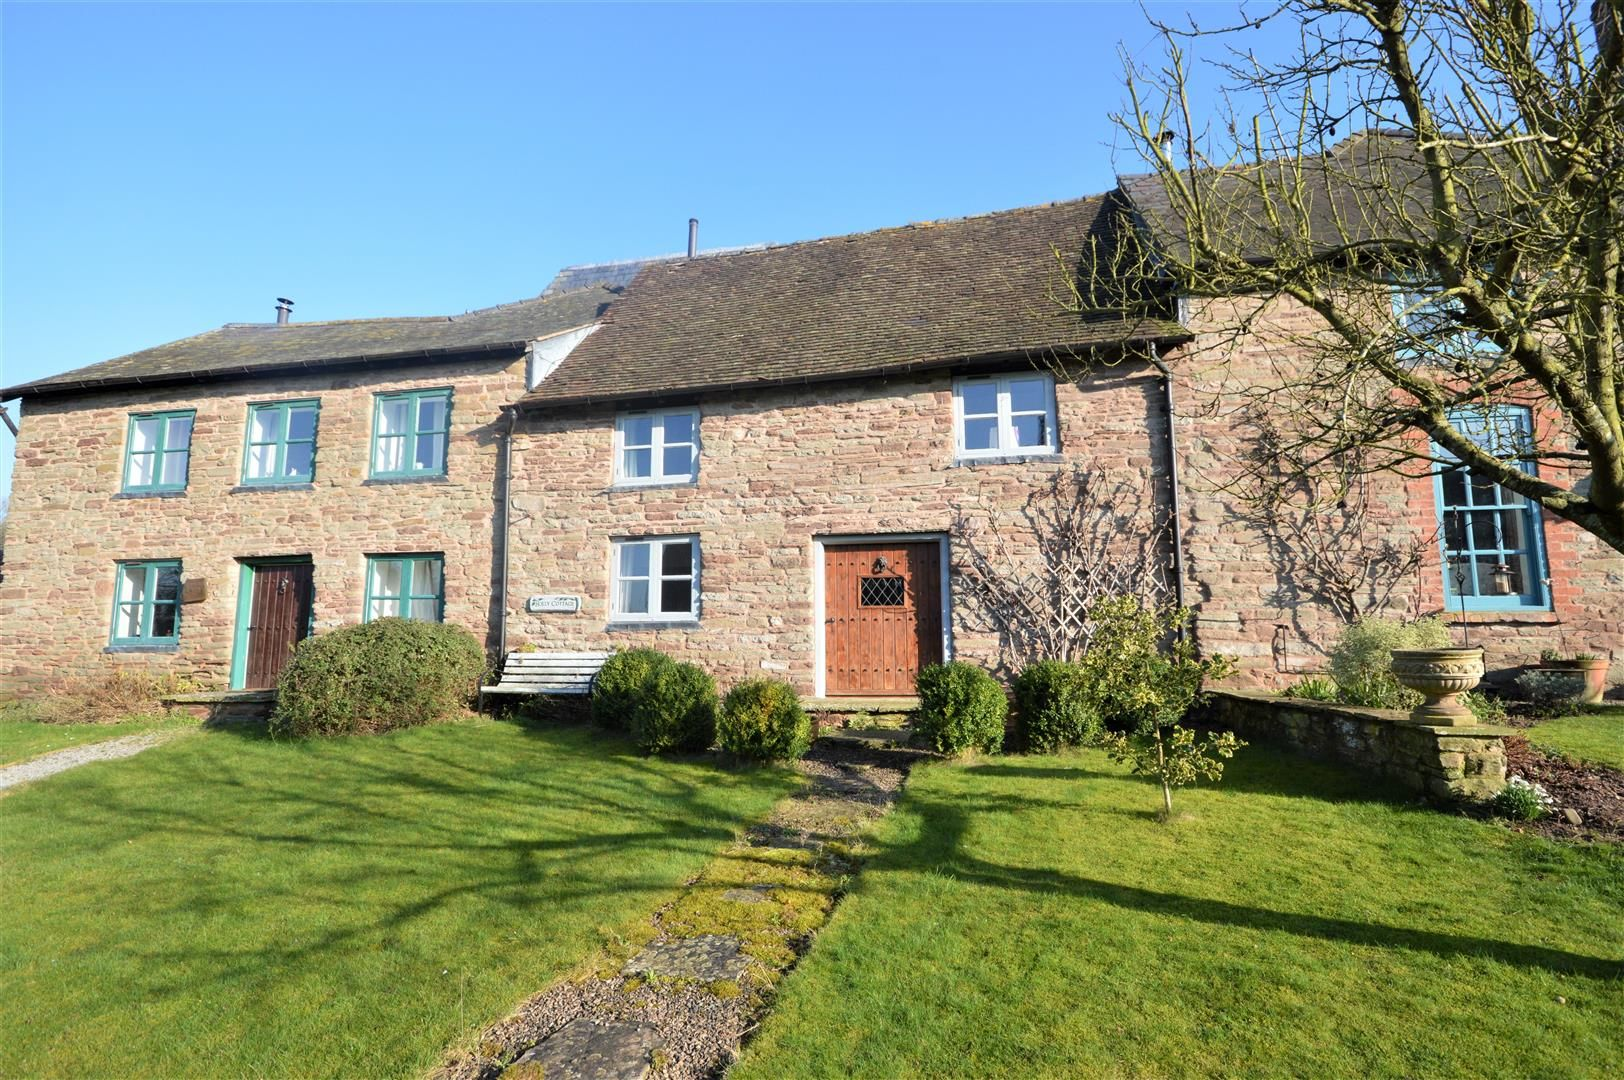 3 bed barn-conversion for sale in Stoke Prior 1